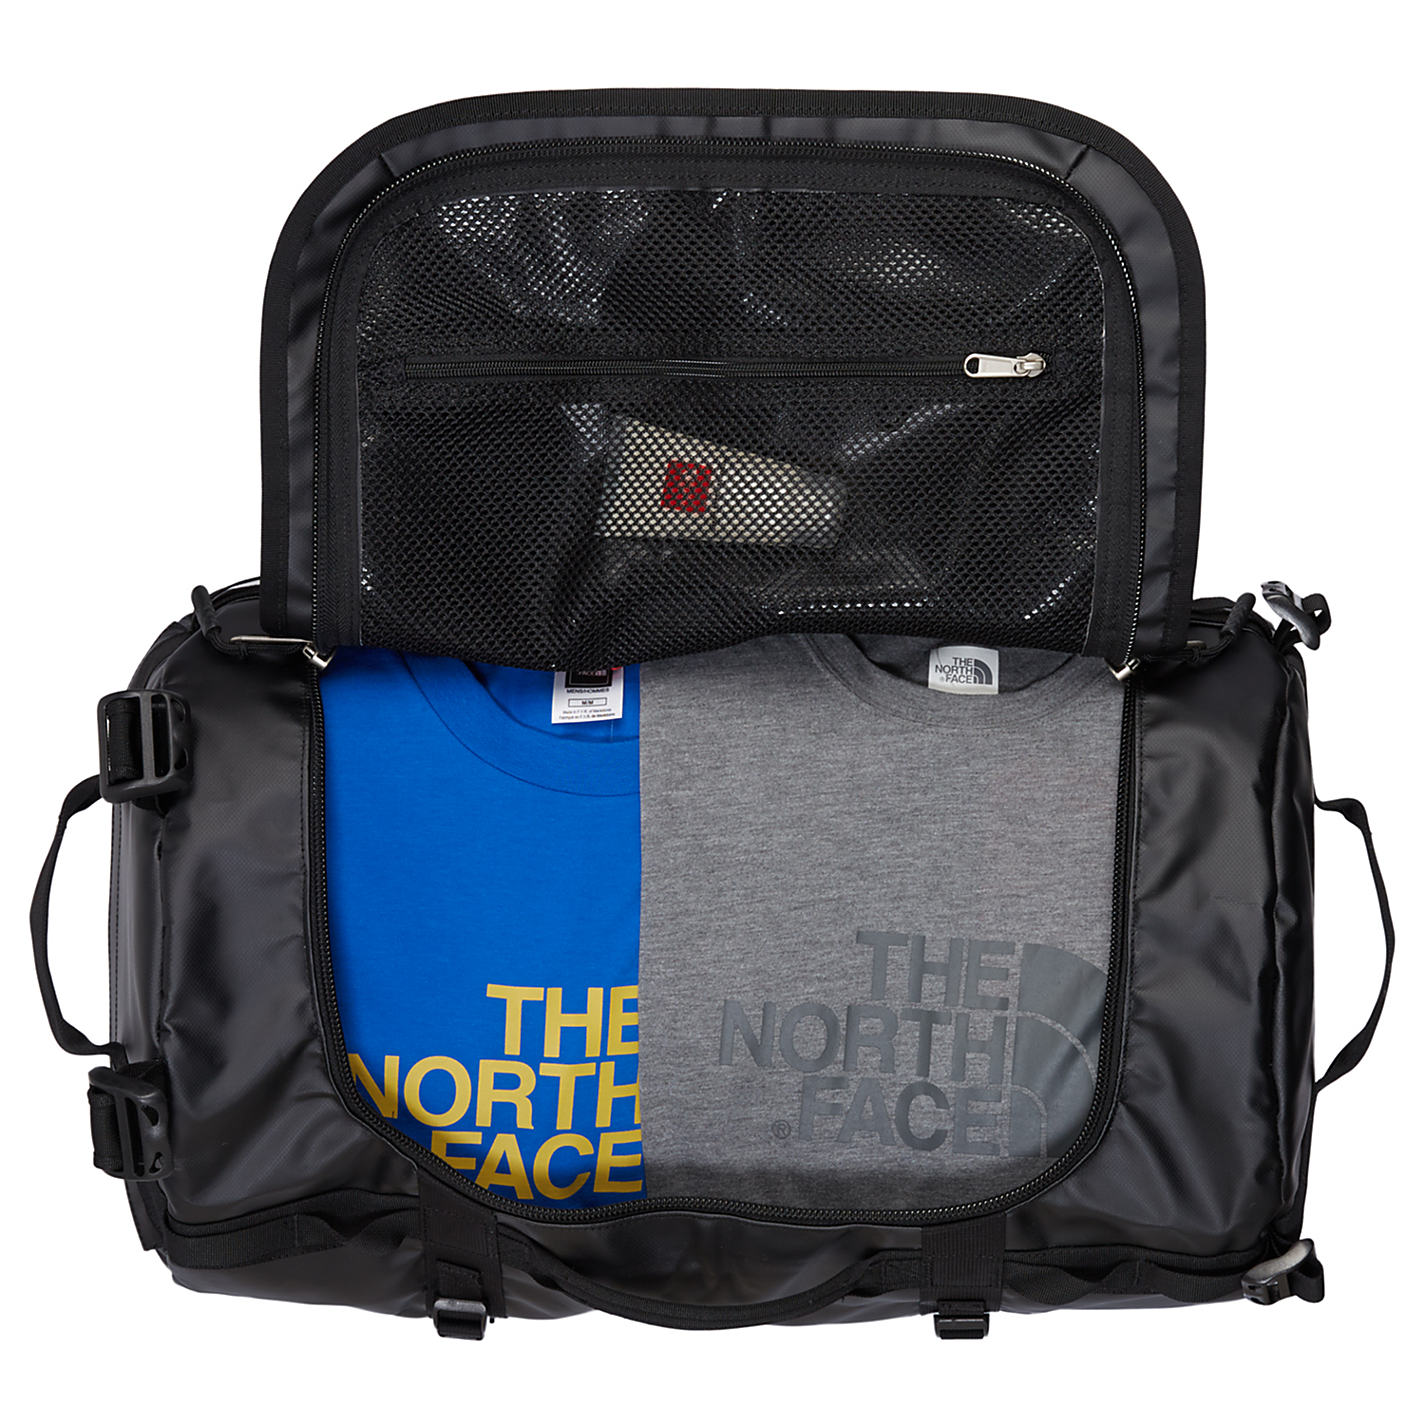 Buy The North Face Base Camp Duffle Bag, Small, Black Online at johnlewis.